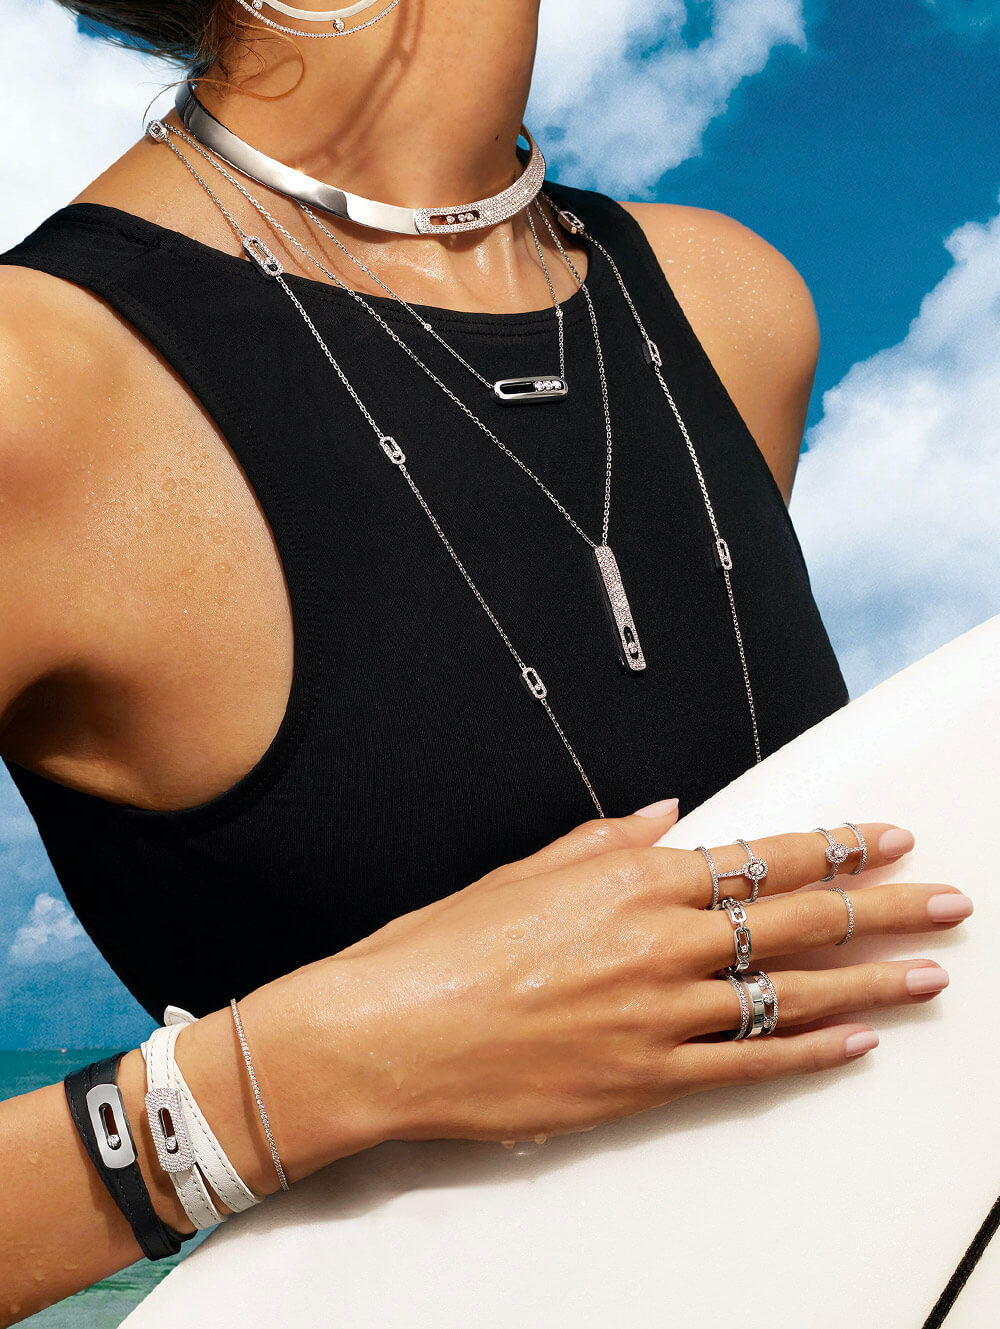 Messika summer diamond necklaces